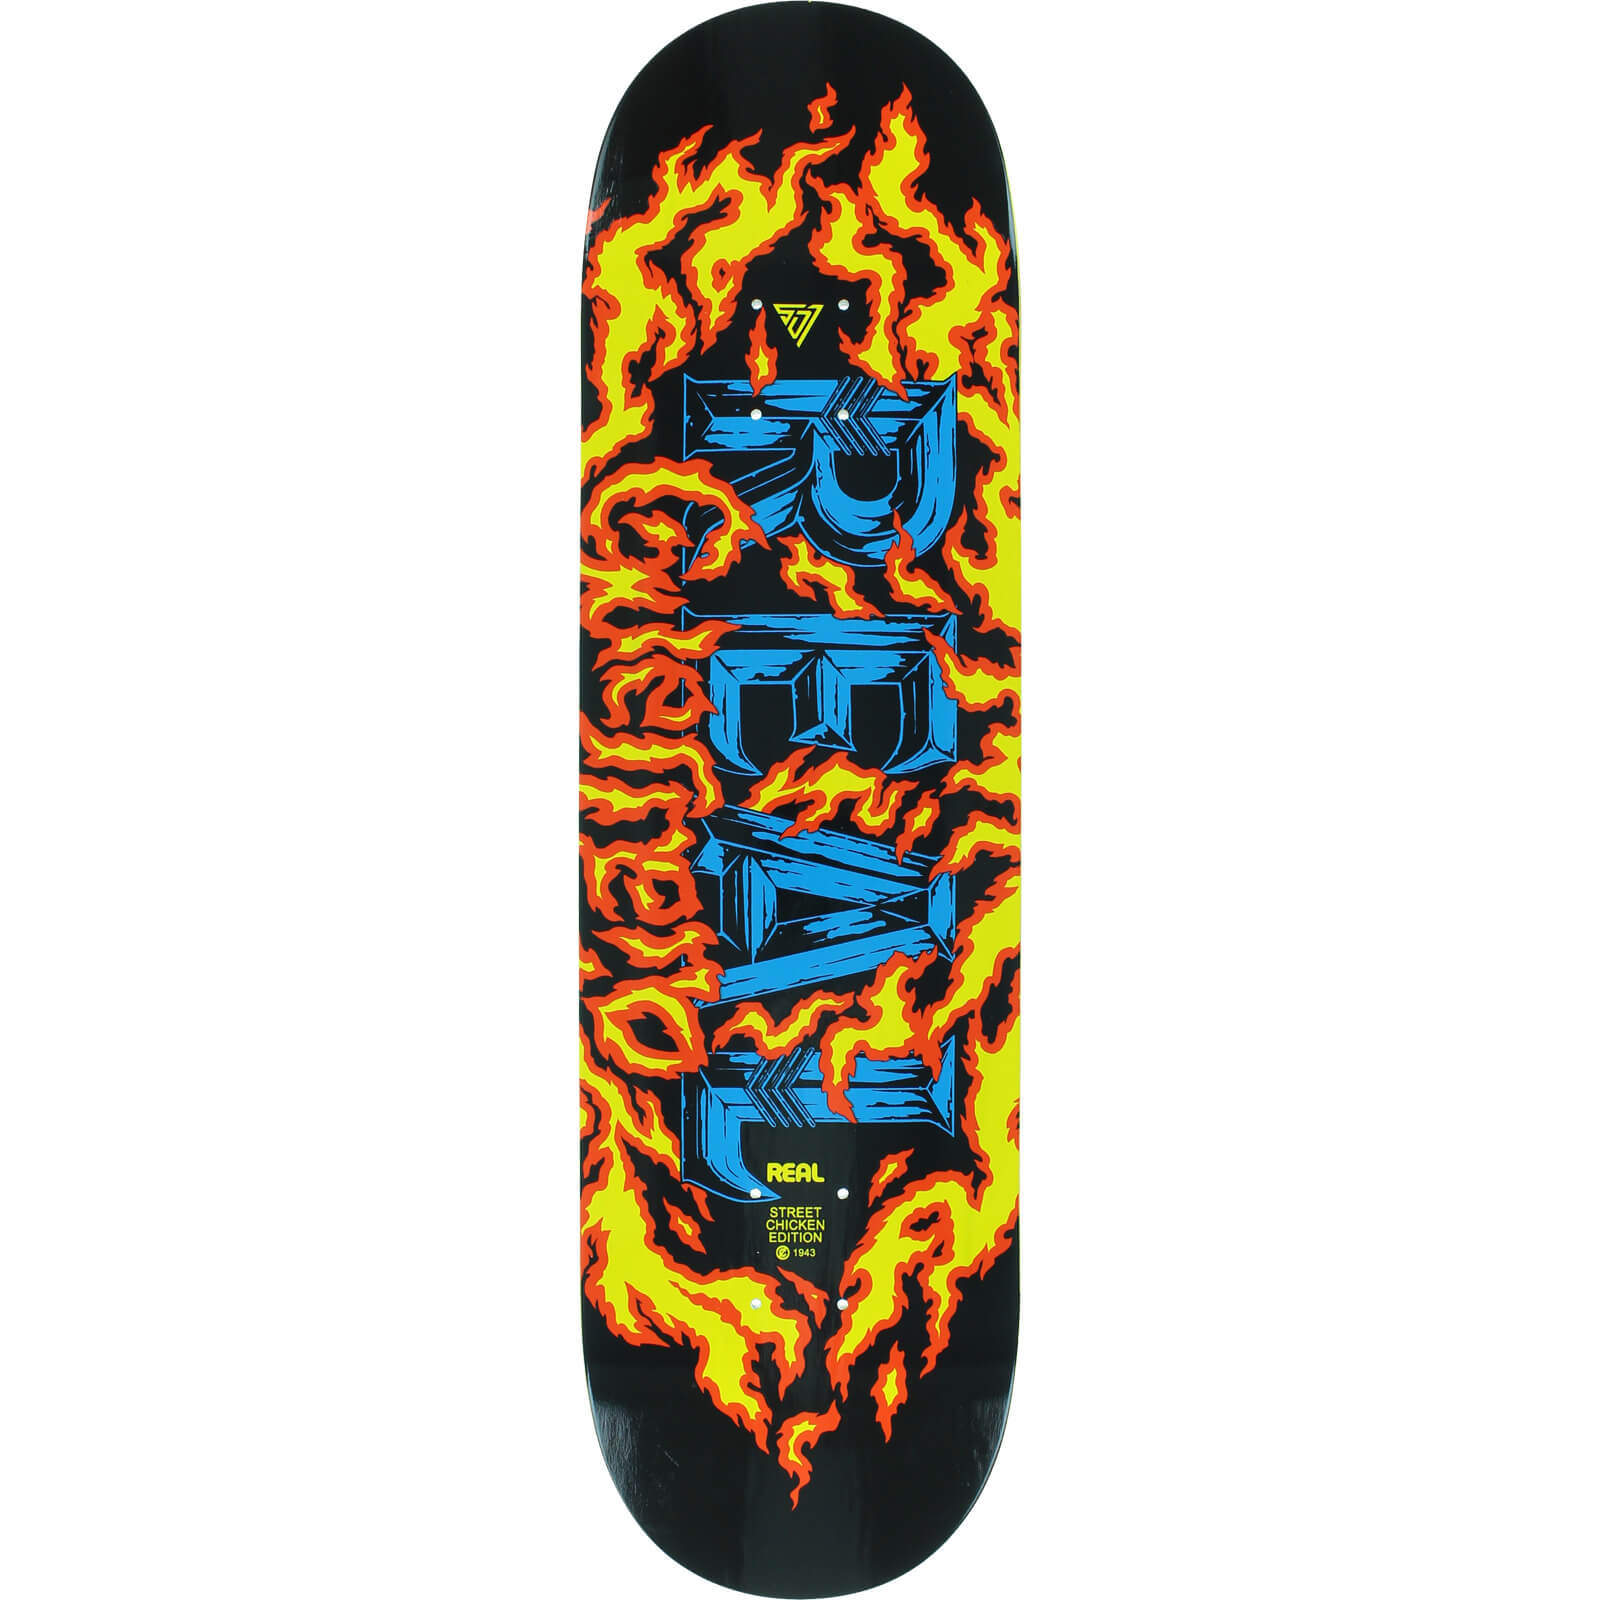 Real Skateboards Tommy Guerrero Hot Butterknife Skateboard